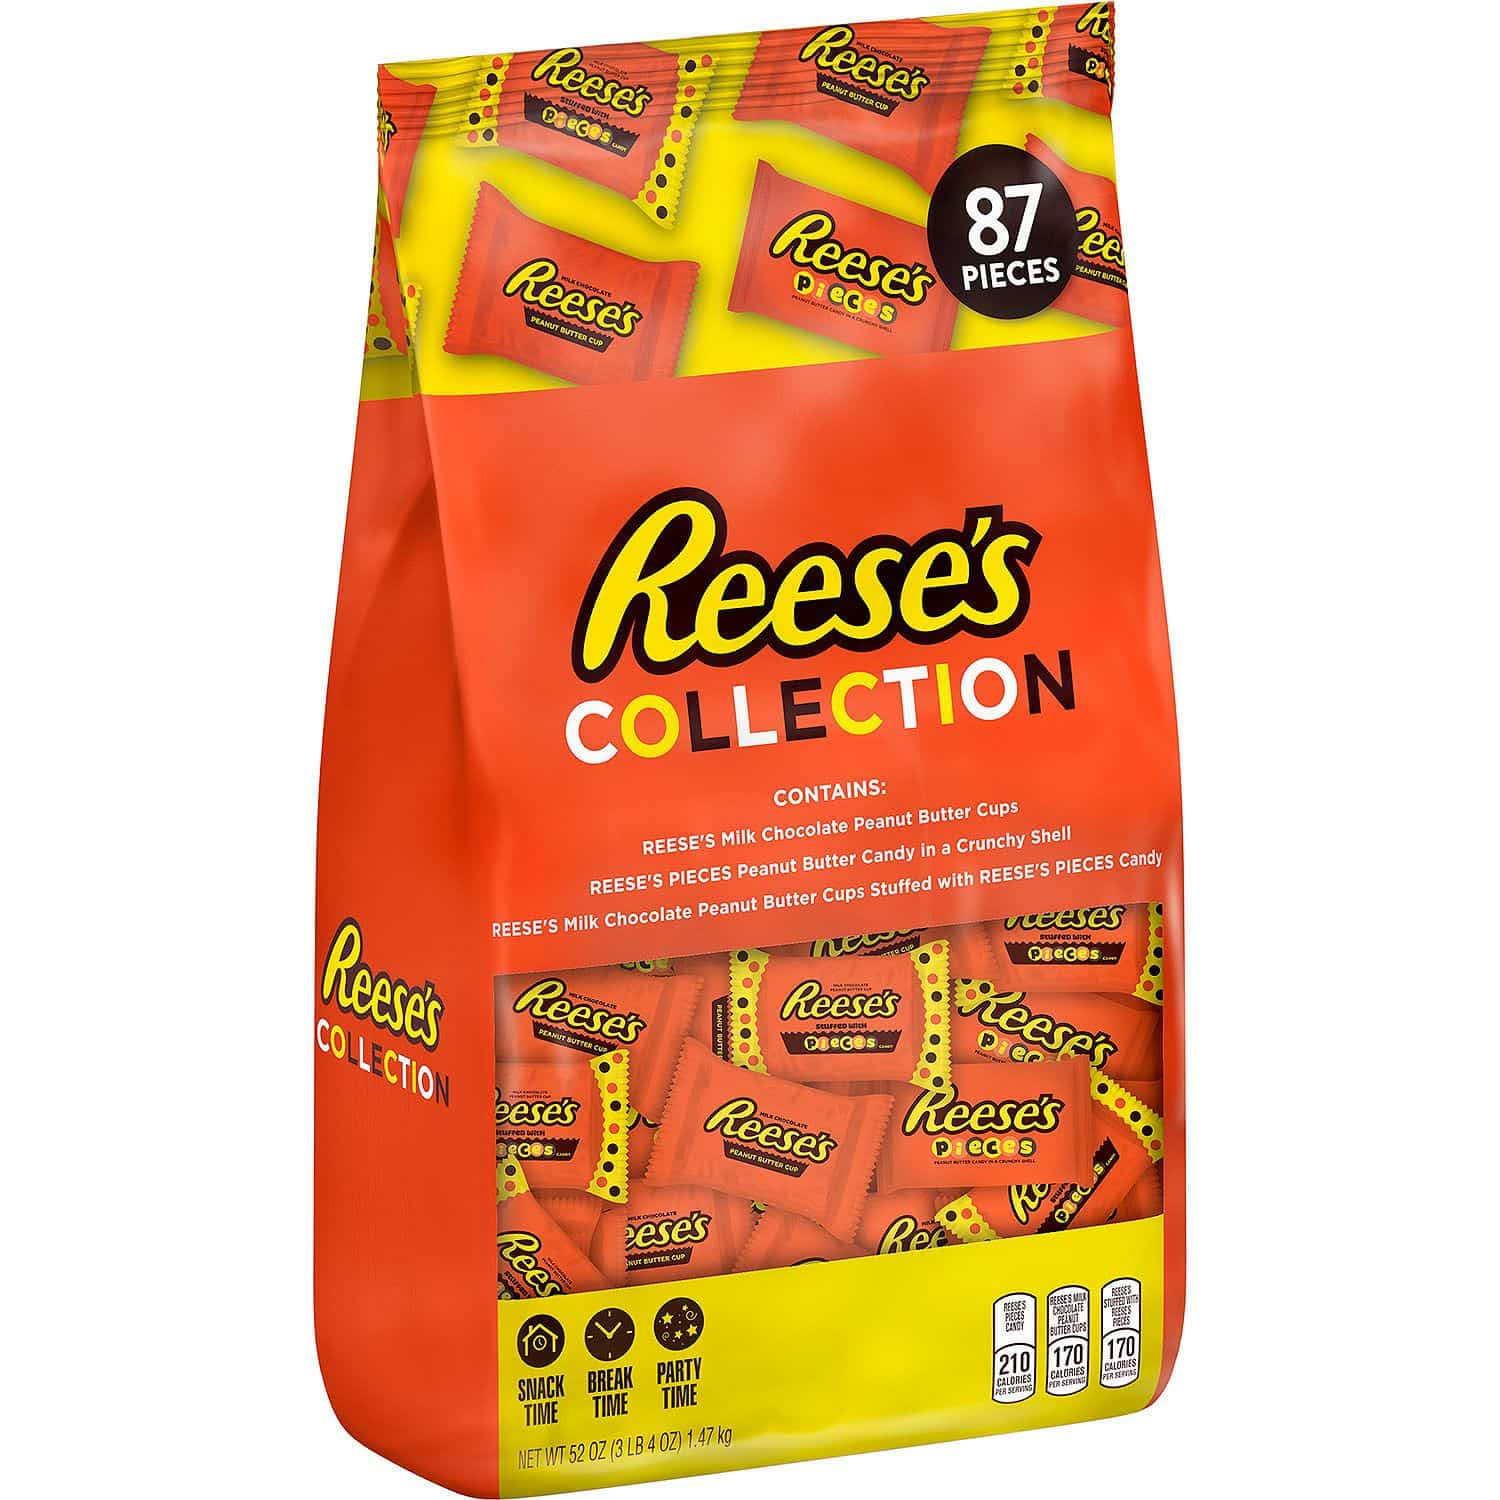 Reese's Peanut Butter Cups Collection 52 oz. 87 ct.